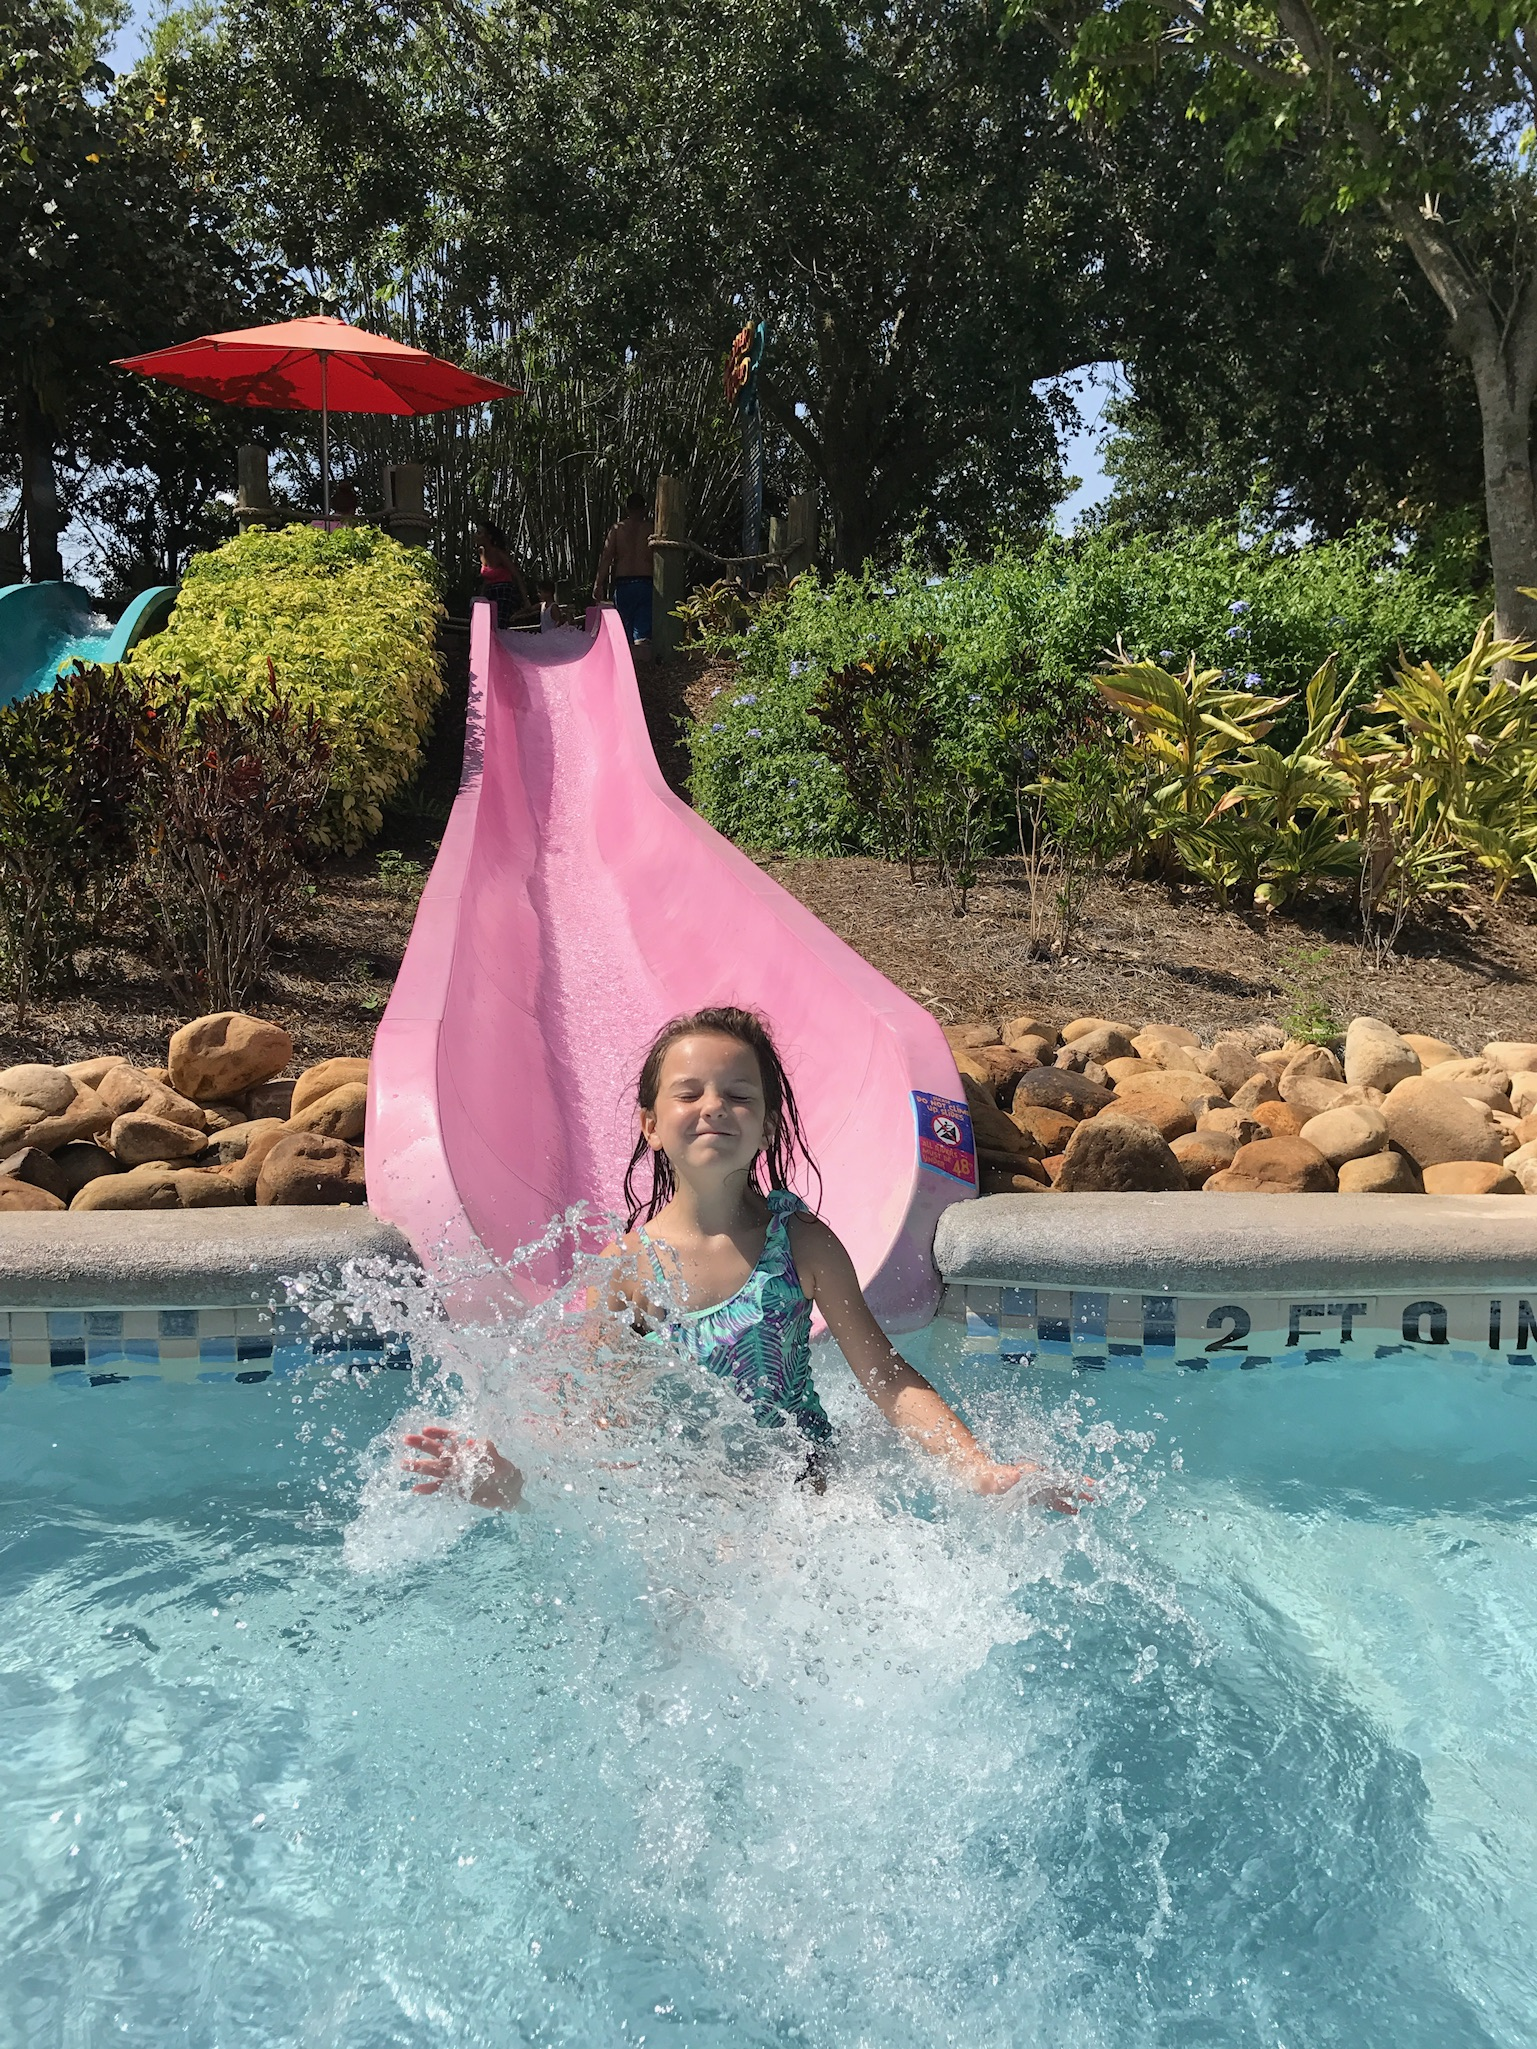 Splashing Around - A Day at Aquatica